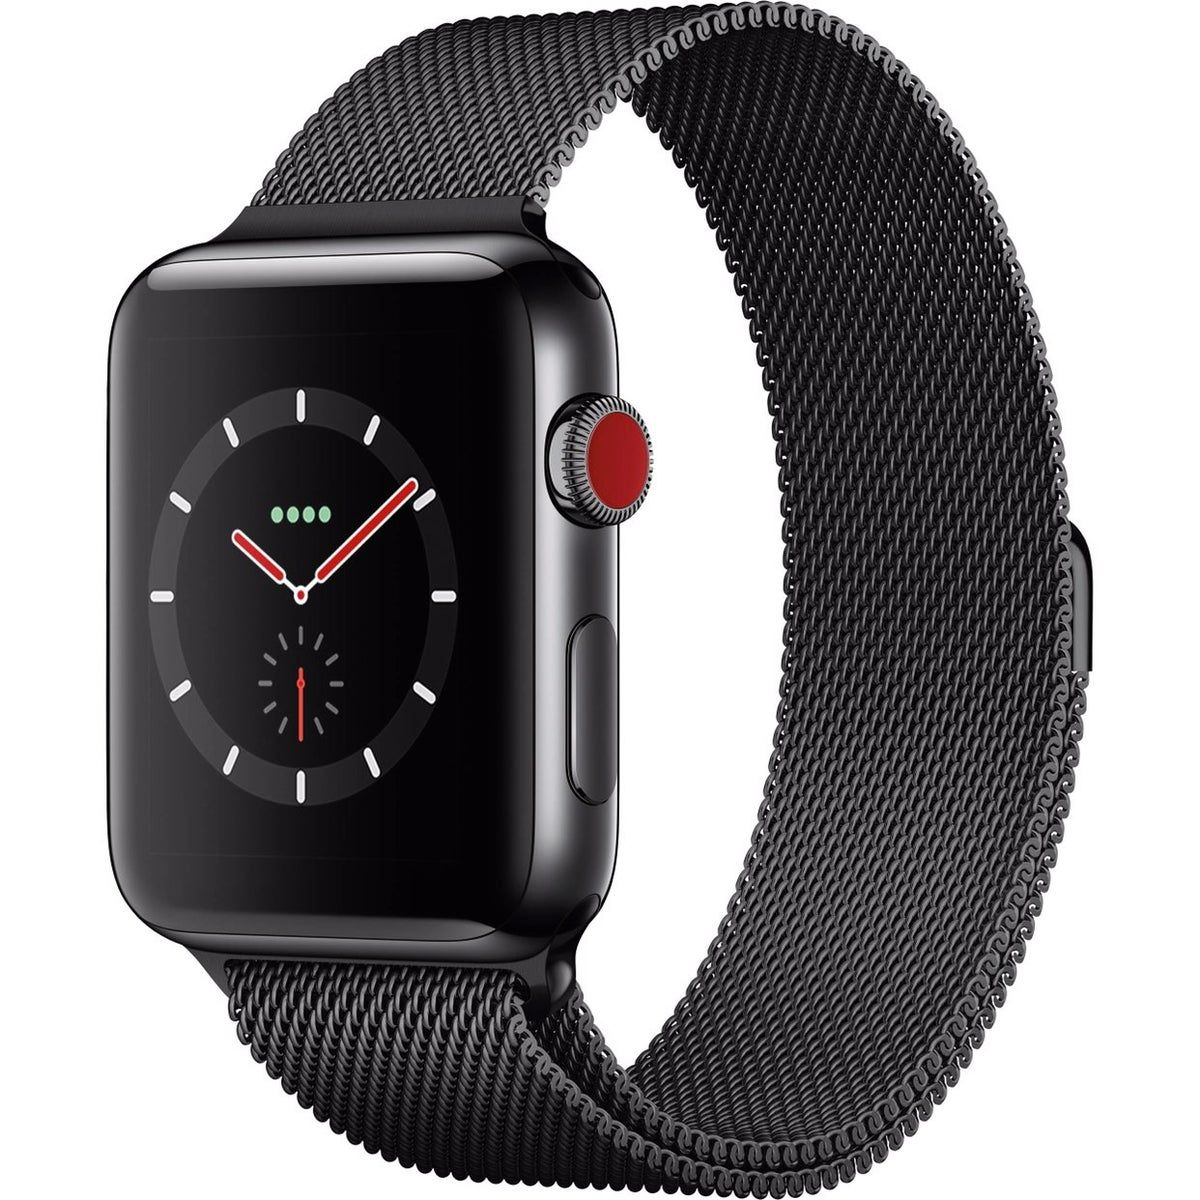 Magnet Metal Band For Apple Watch 42 Buy Apple Watch Apple Watch Apple Watch Bands